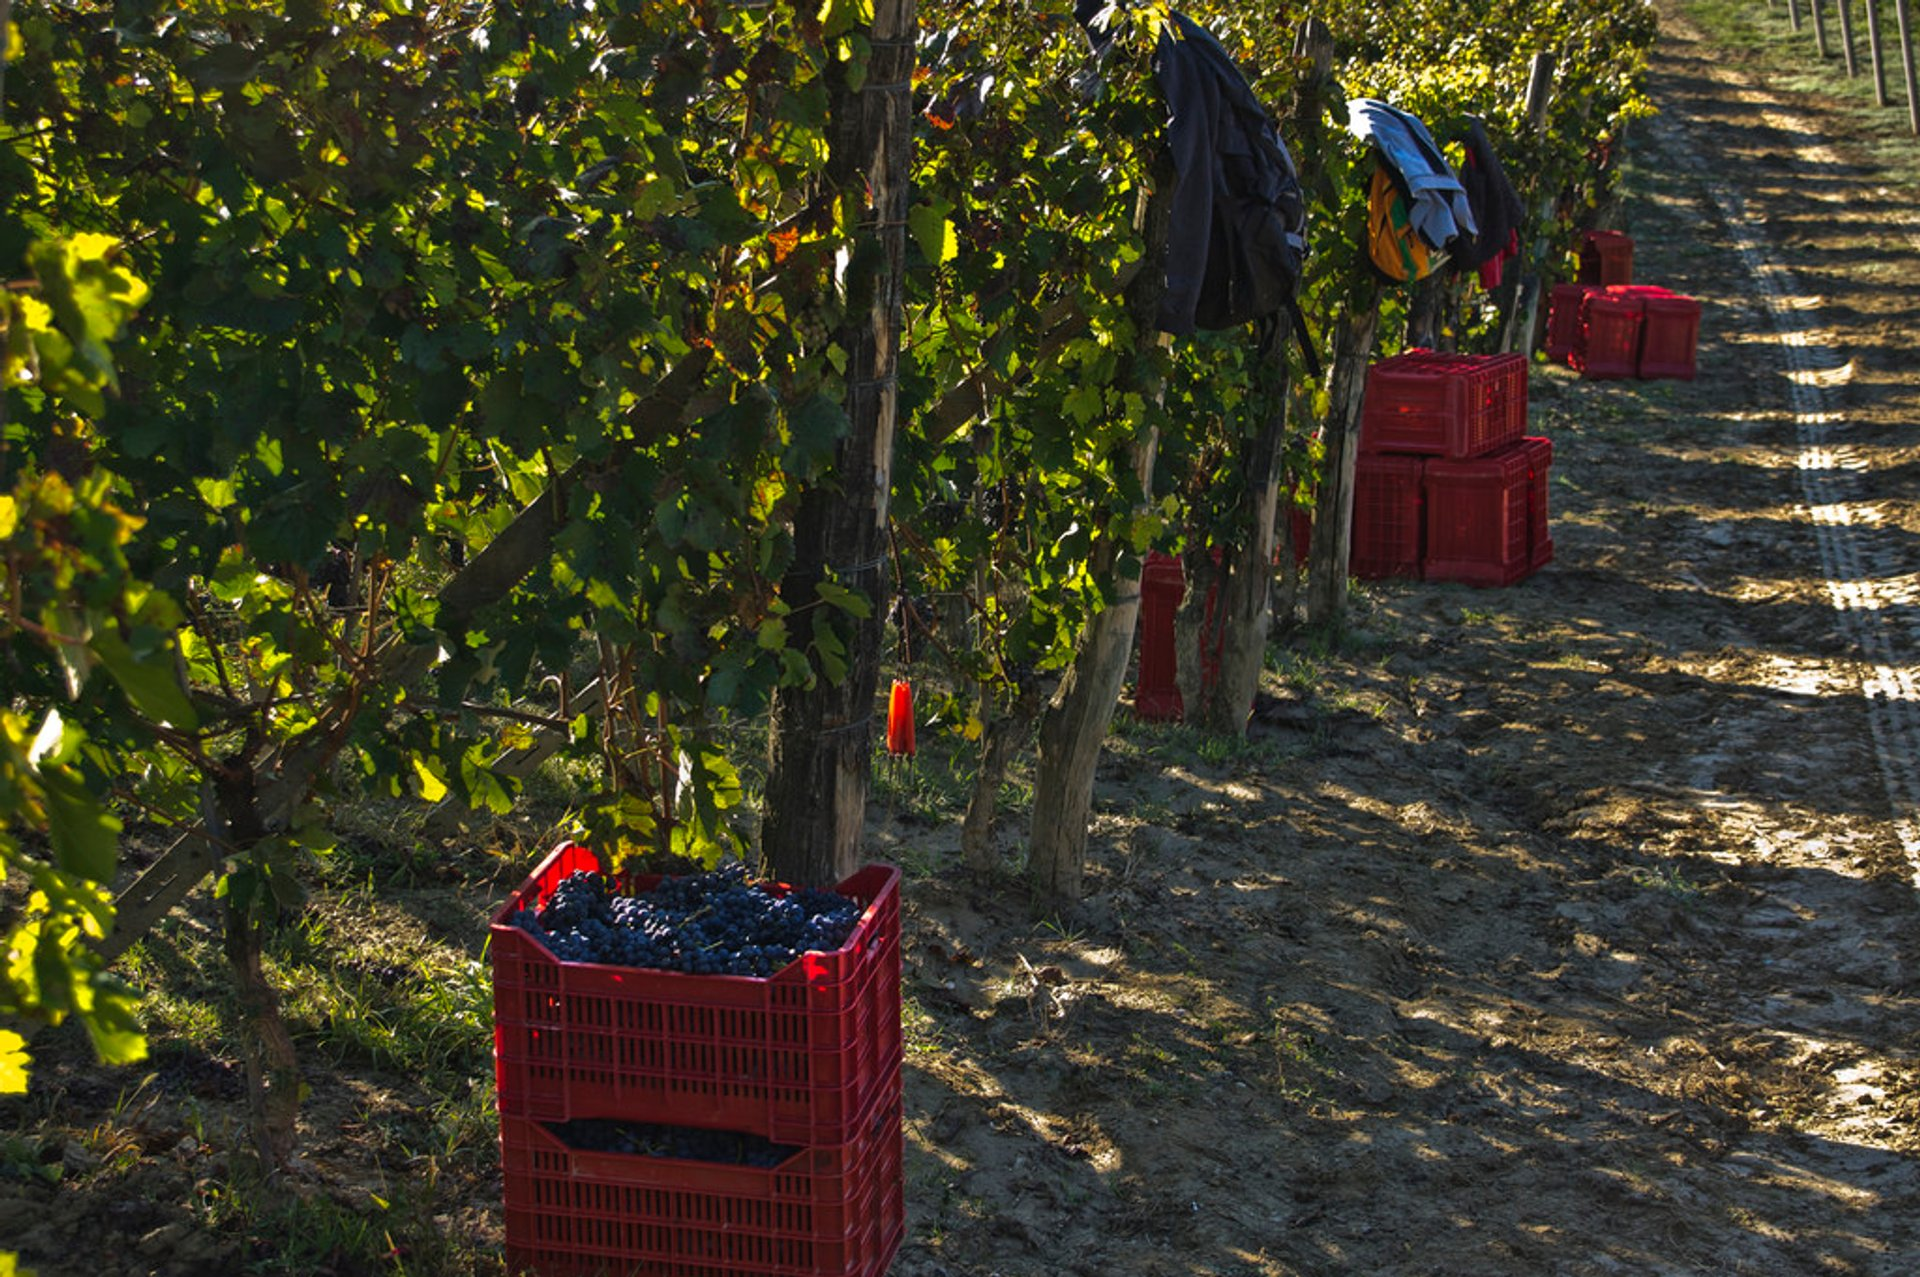 Vendemmia or Grape Harvest in Tuscany - Best Season 2019